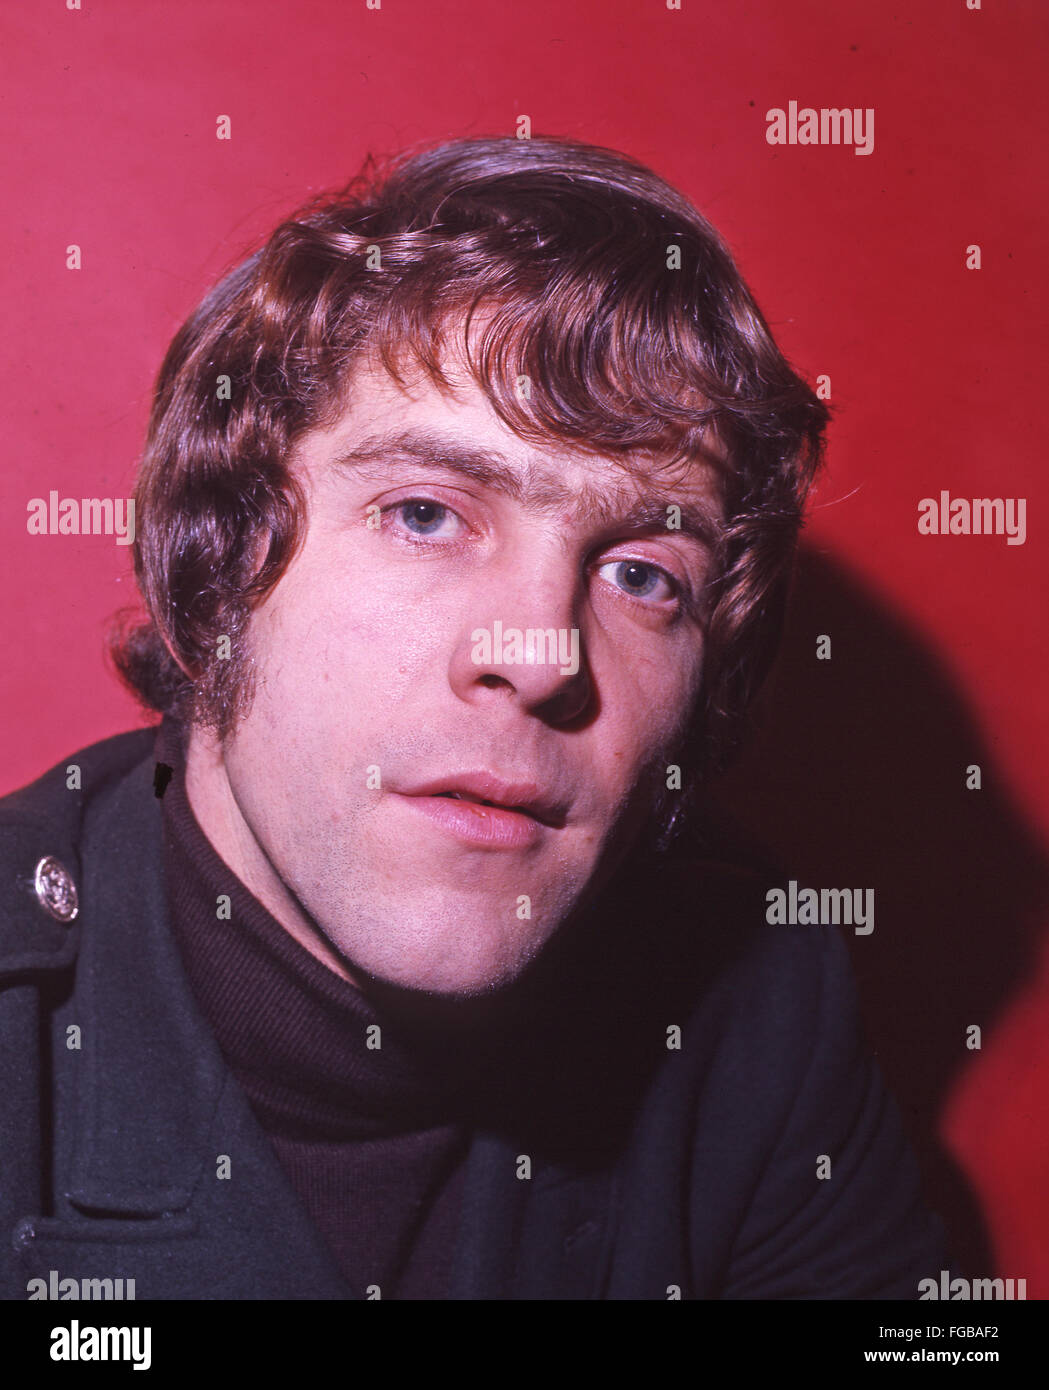 Dave Dee, Dozy, Beaky, Mick & Tich - Touch Me, Touch Me / Nose For Trouble